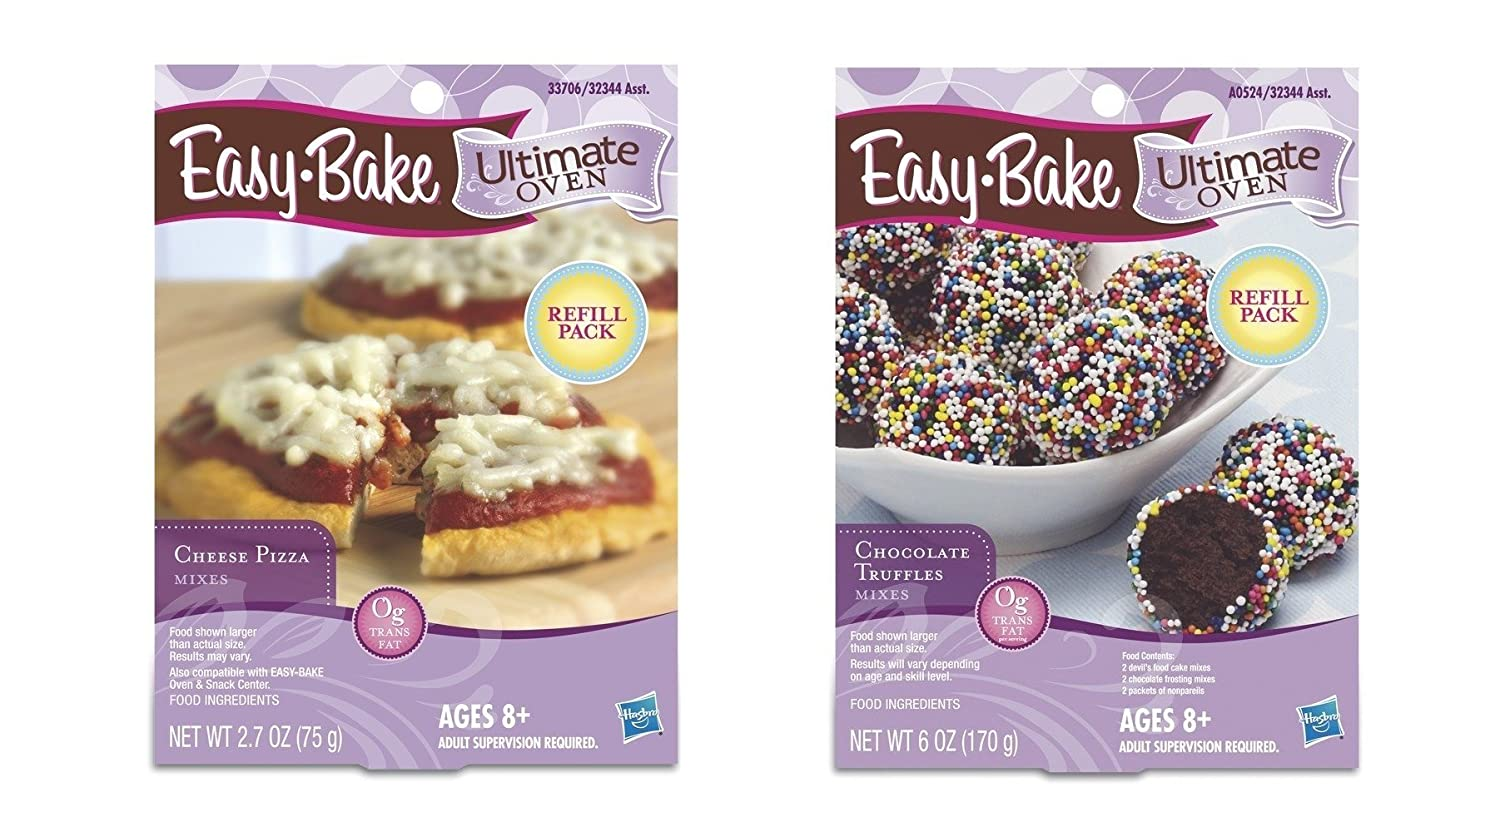 Easy Bake Dinner and Dessert Bundle #1, 2 Items: 1 Cheese Pizza Refill, 1 Chocolate Truffles Refill